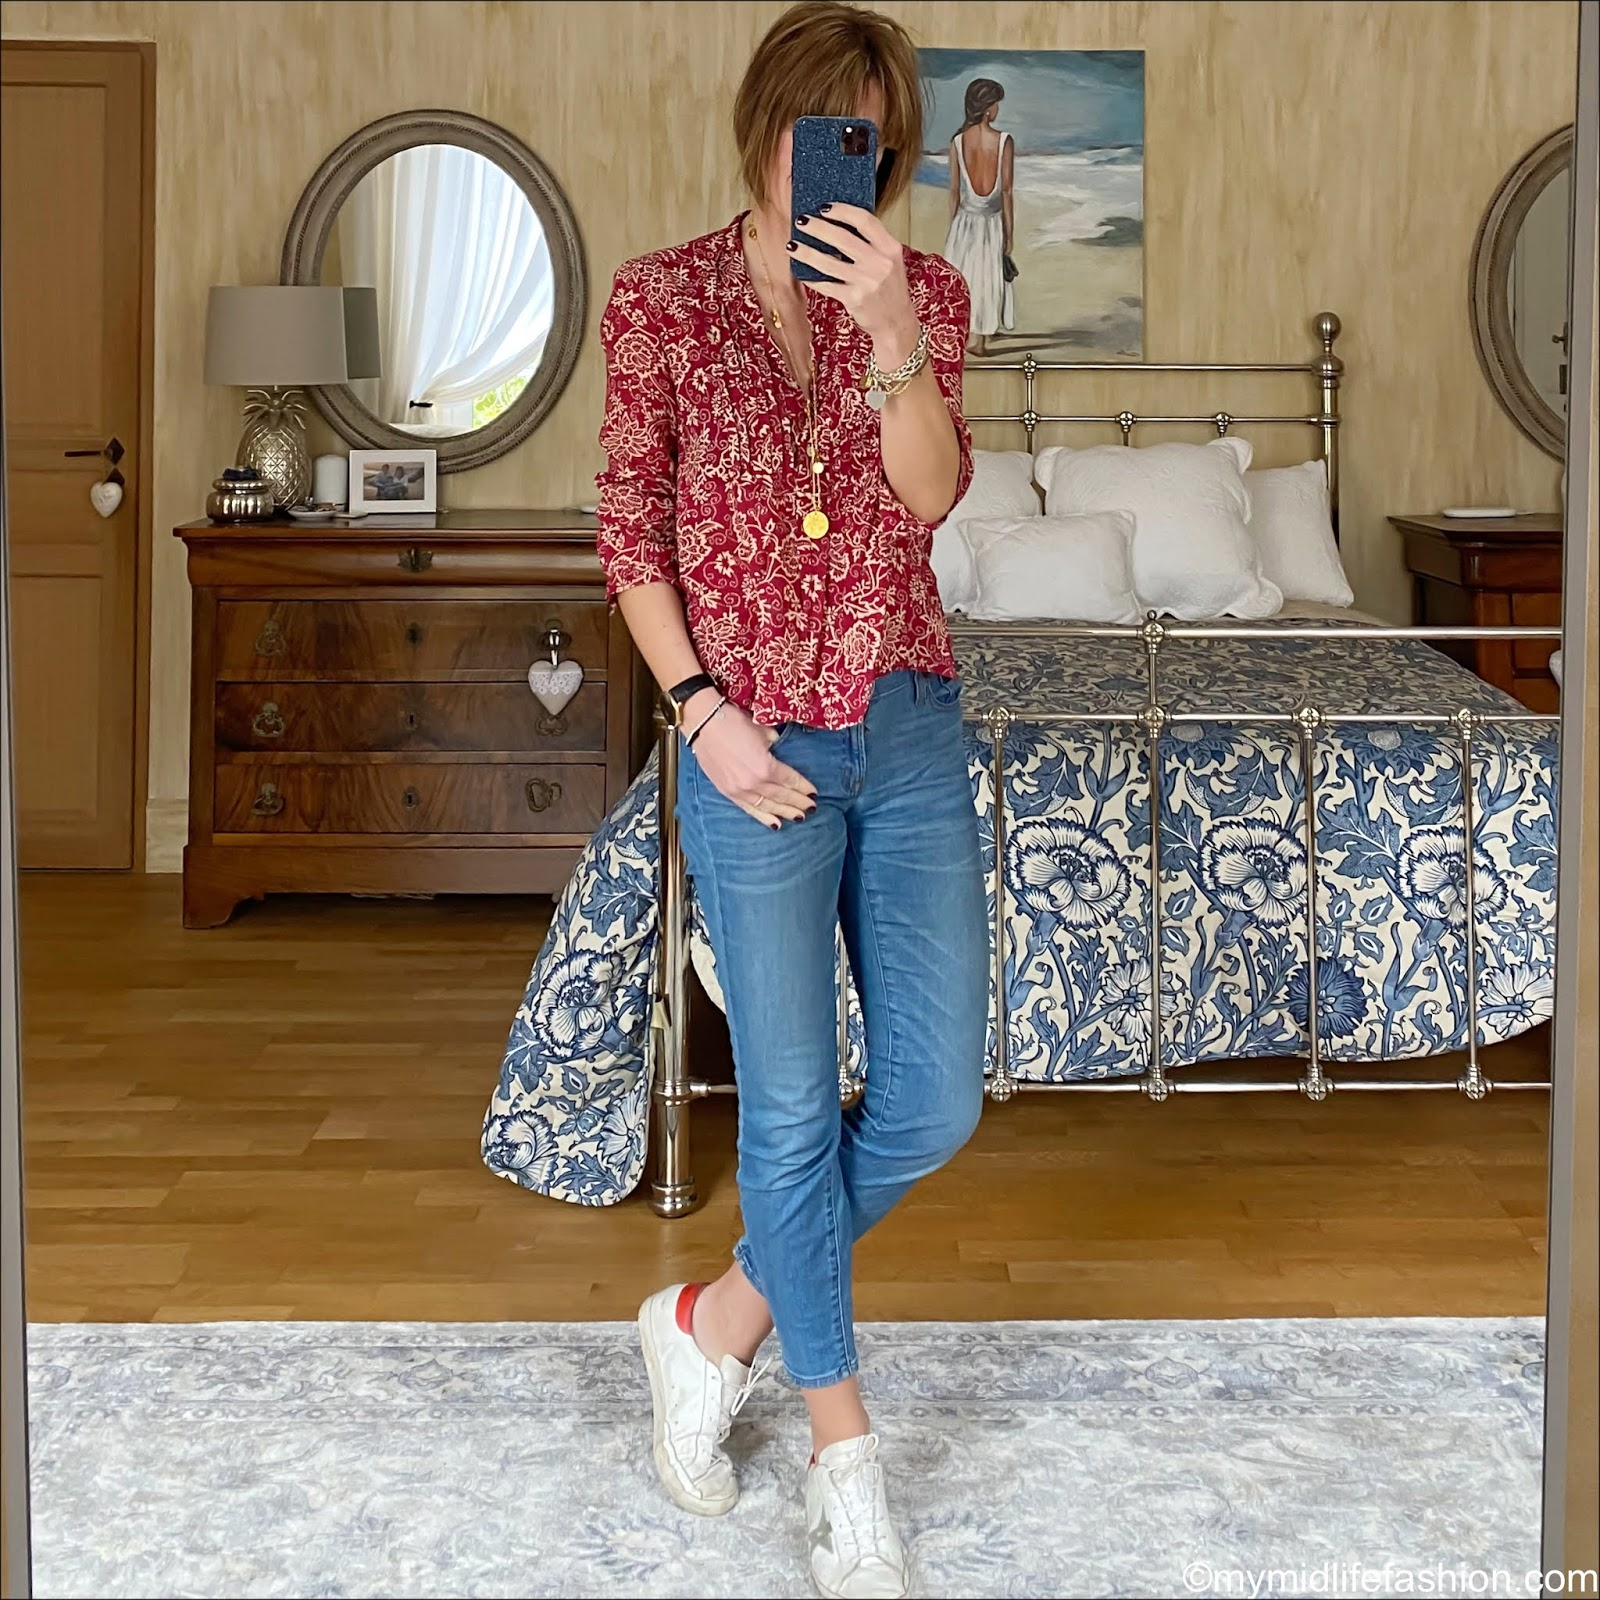 My midlife fashion, Isabel Marant Etoile cotton patterned blouse, j crew 8 inch toothpick jeans, golden goose superstar low top leather trainers, Ashiana boho necklace